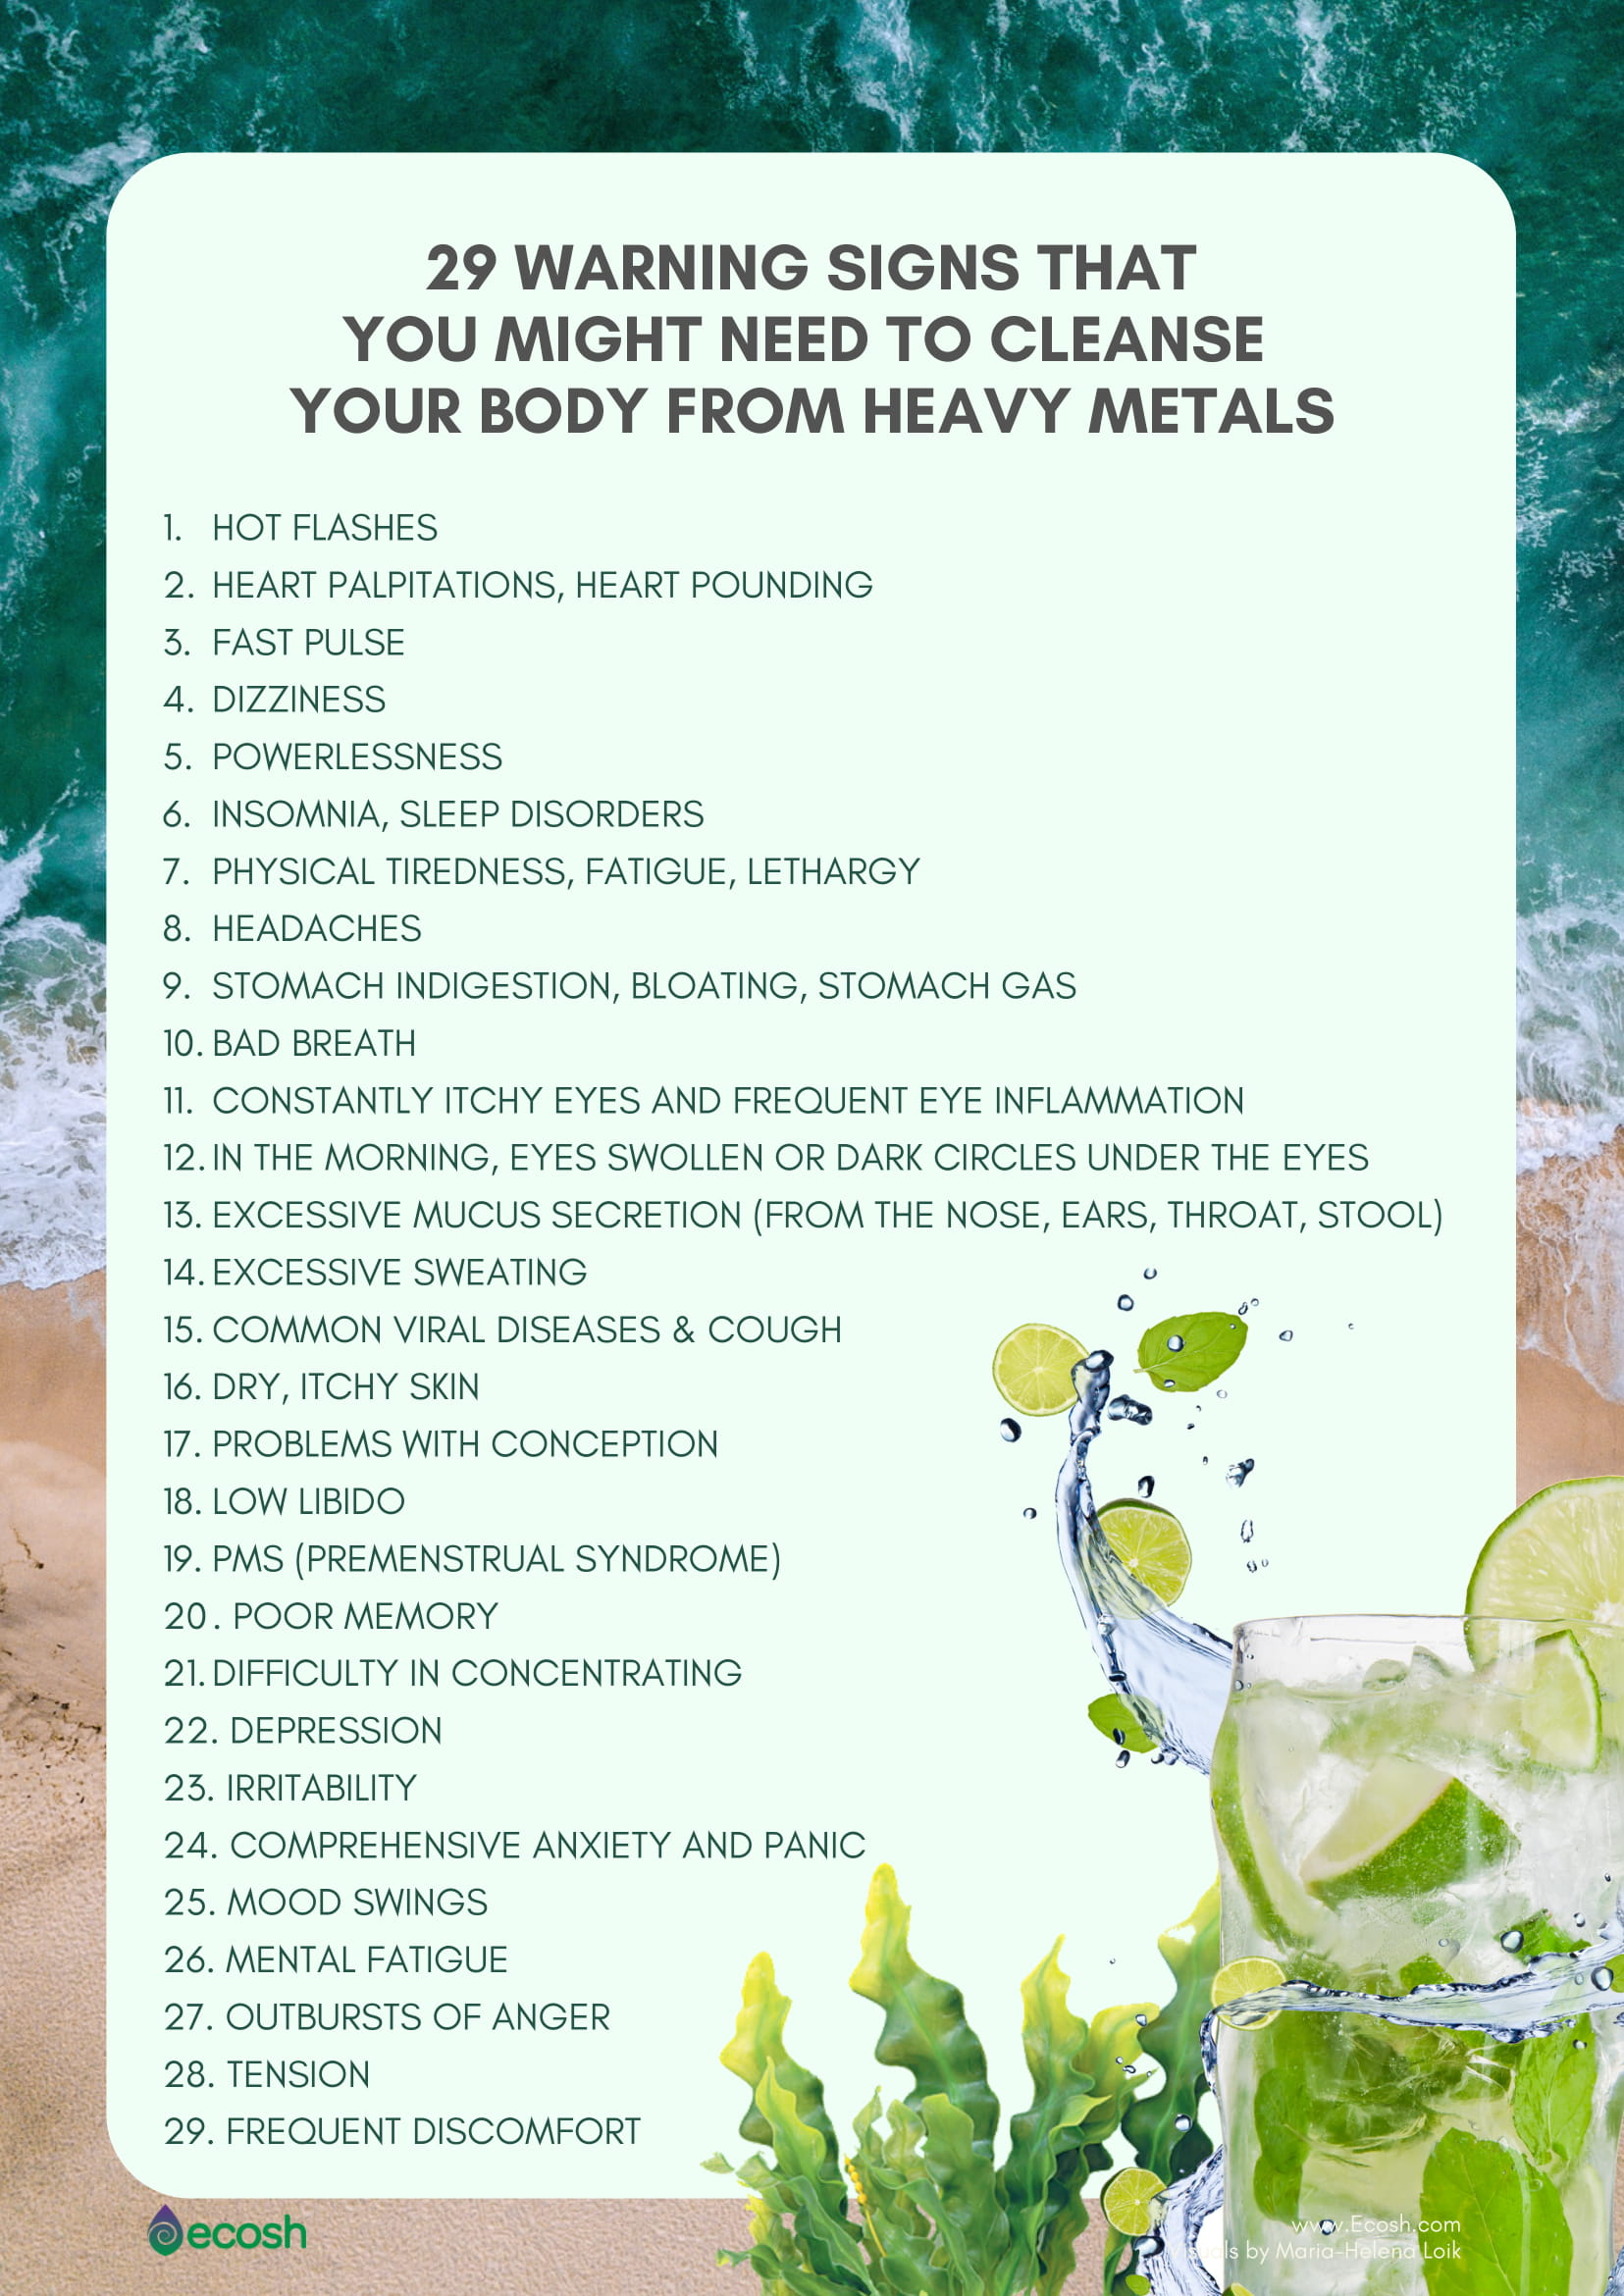 Ecosh_2019-symptoms and early warning signs that you might need to cleanse your body from heavy metals and toxins